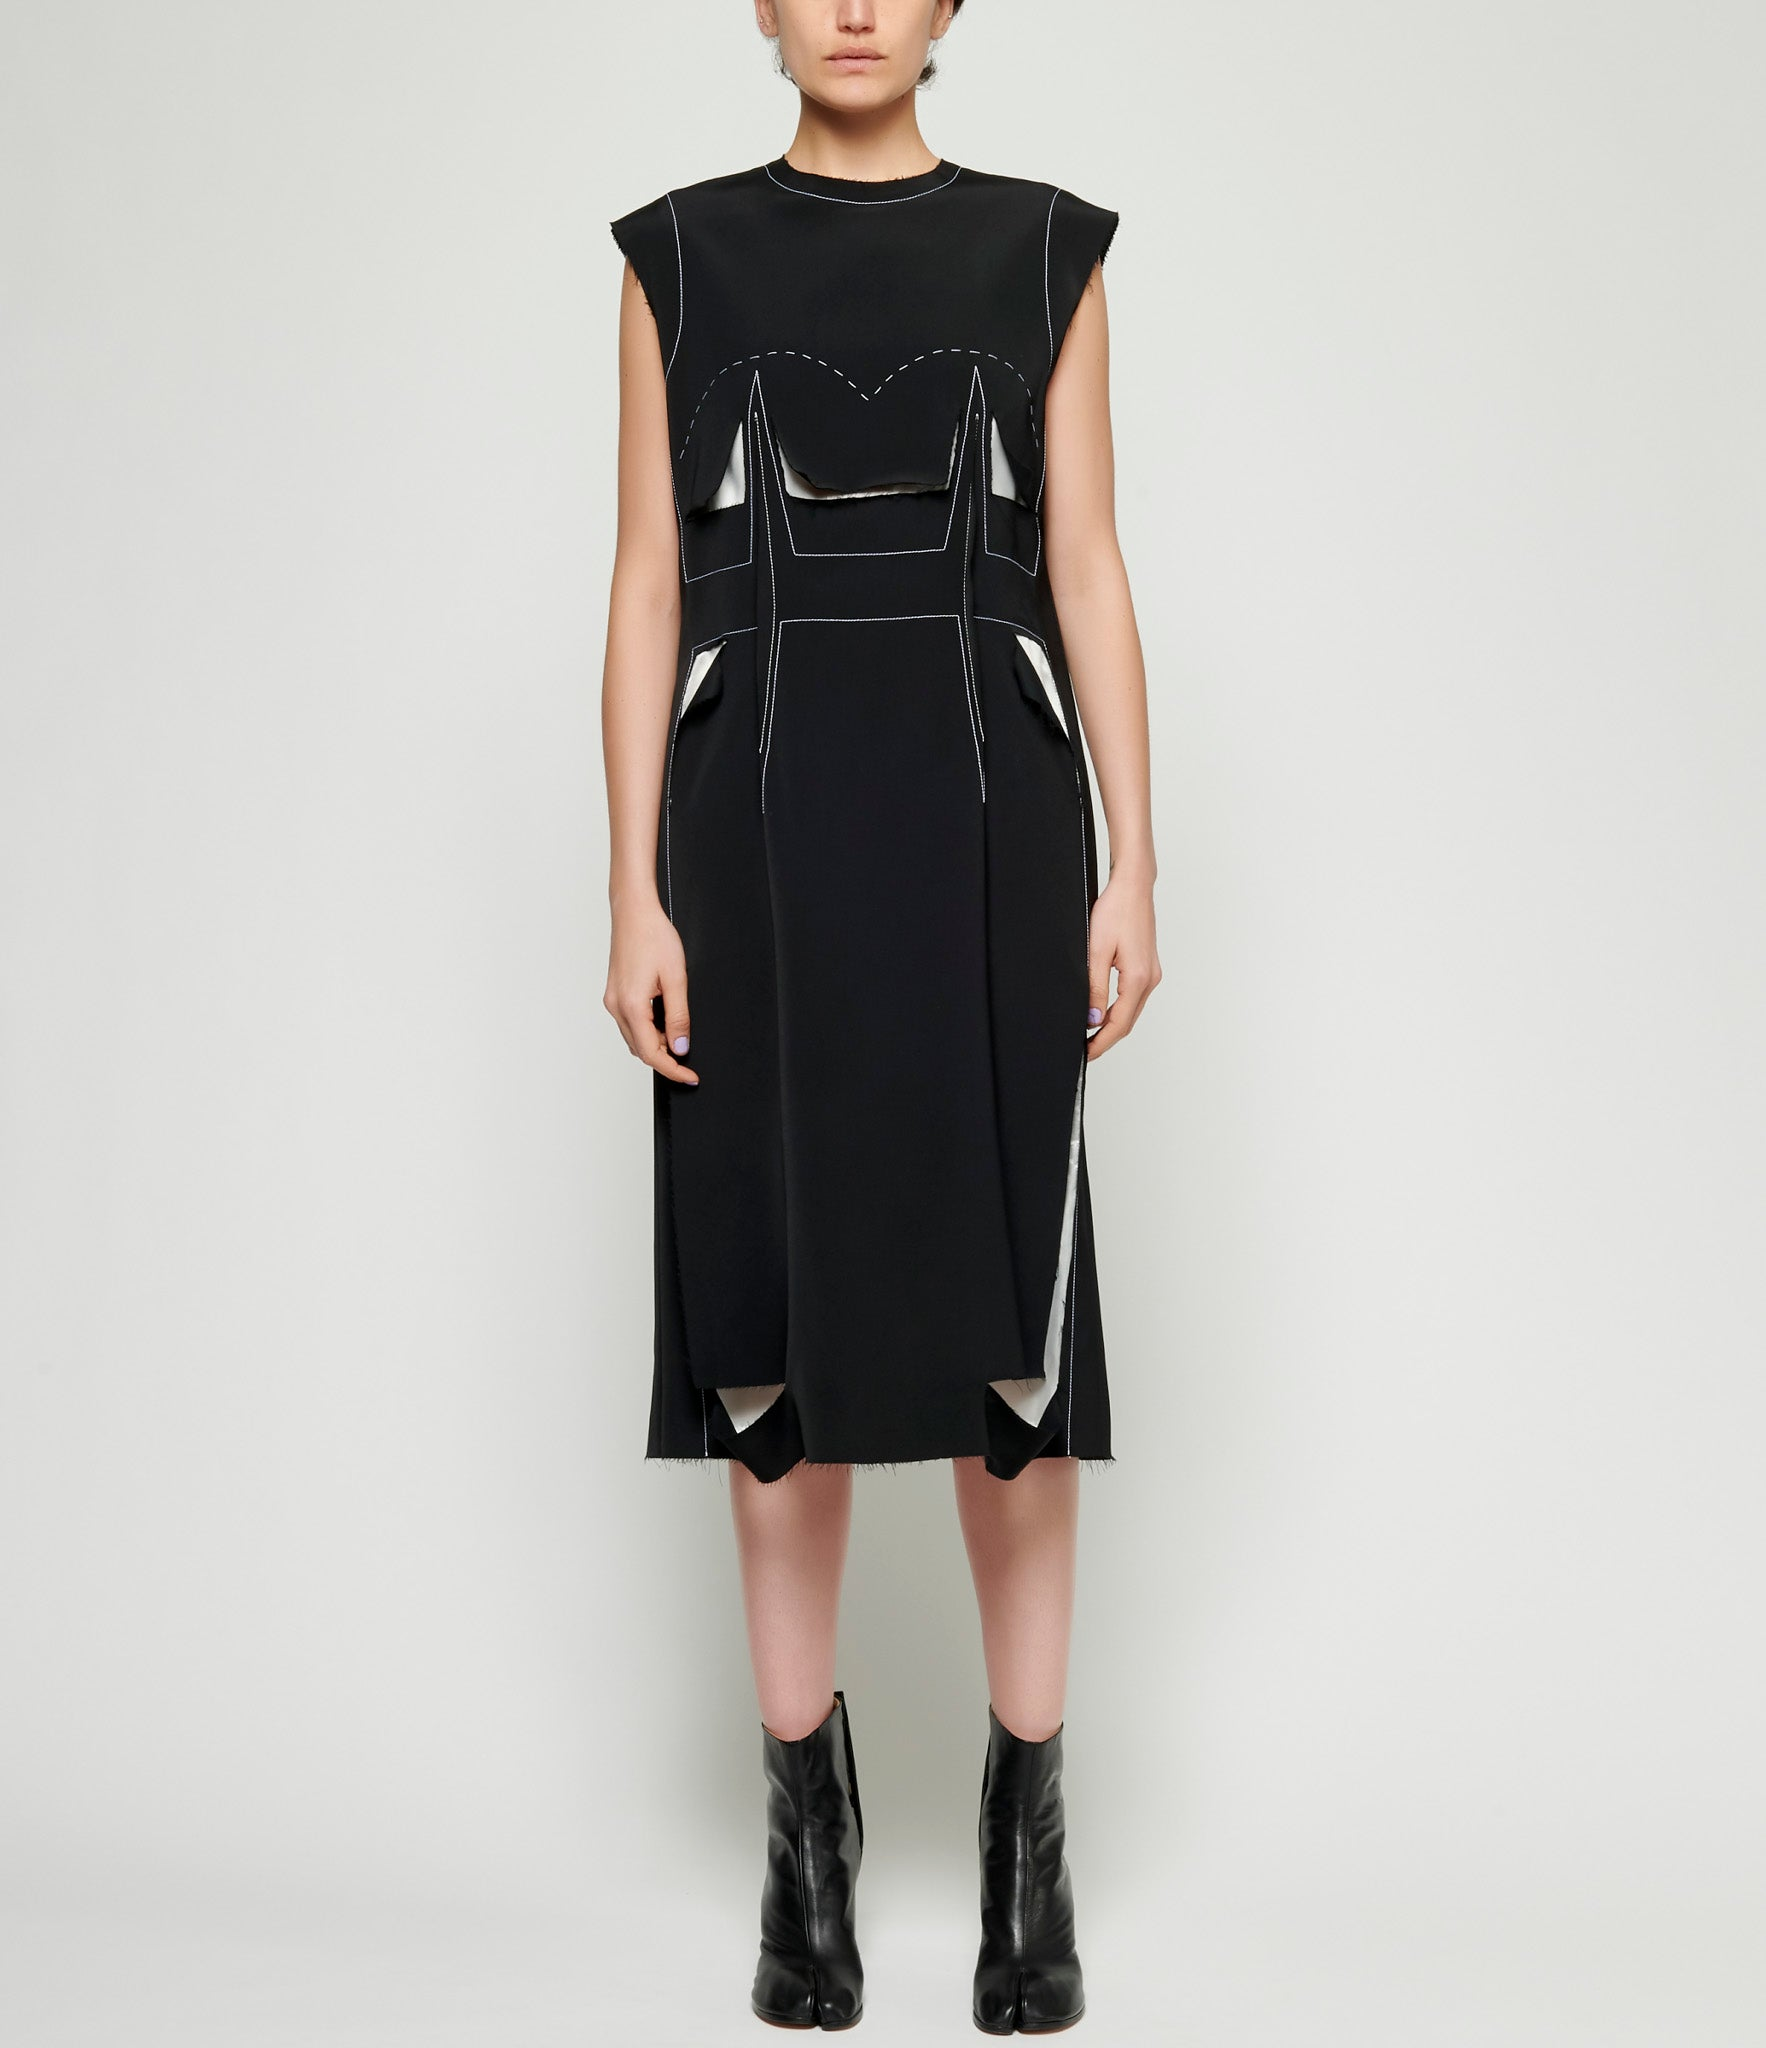 Maison Margiela Runway Viscose Cady Tunic Dress